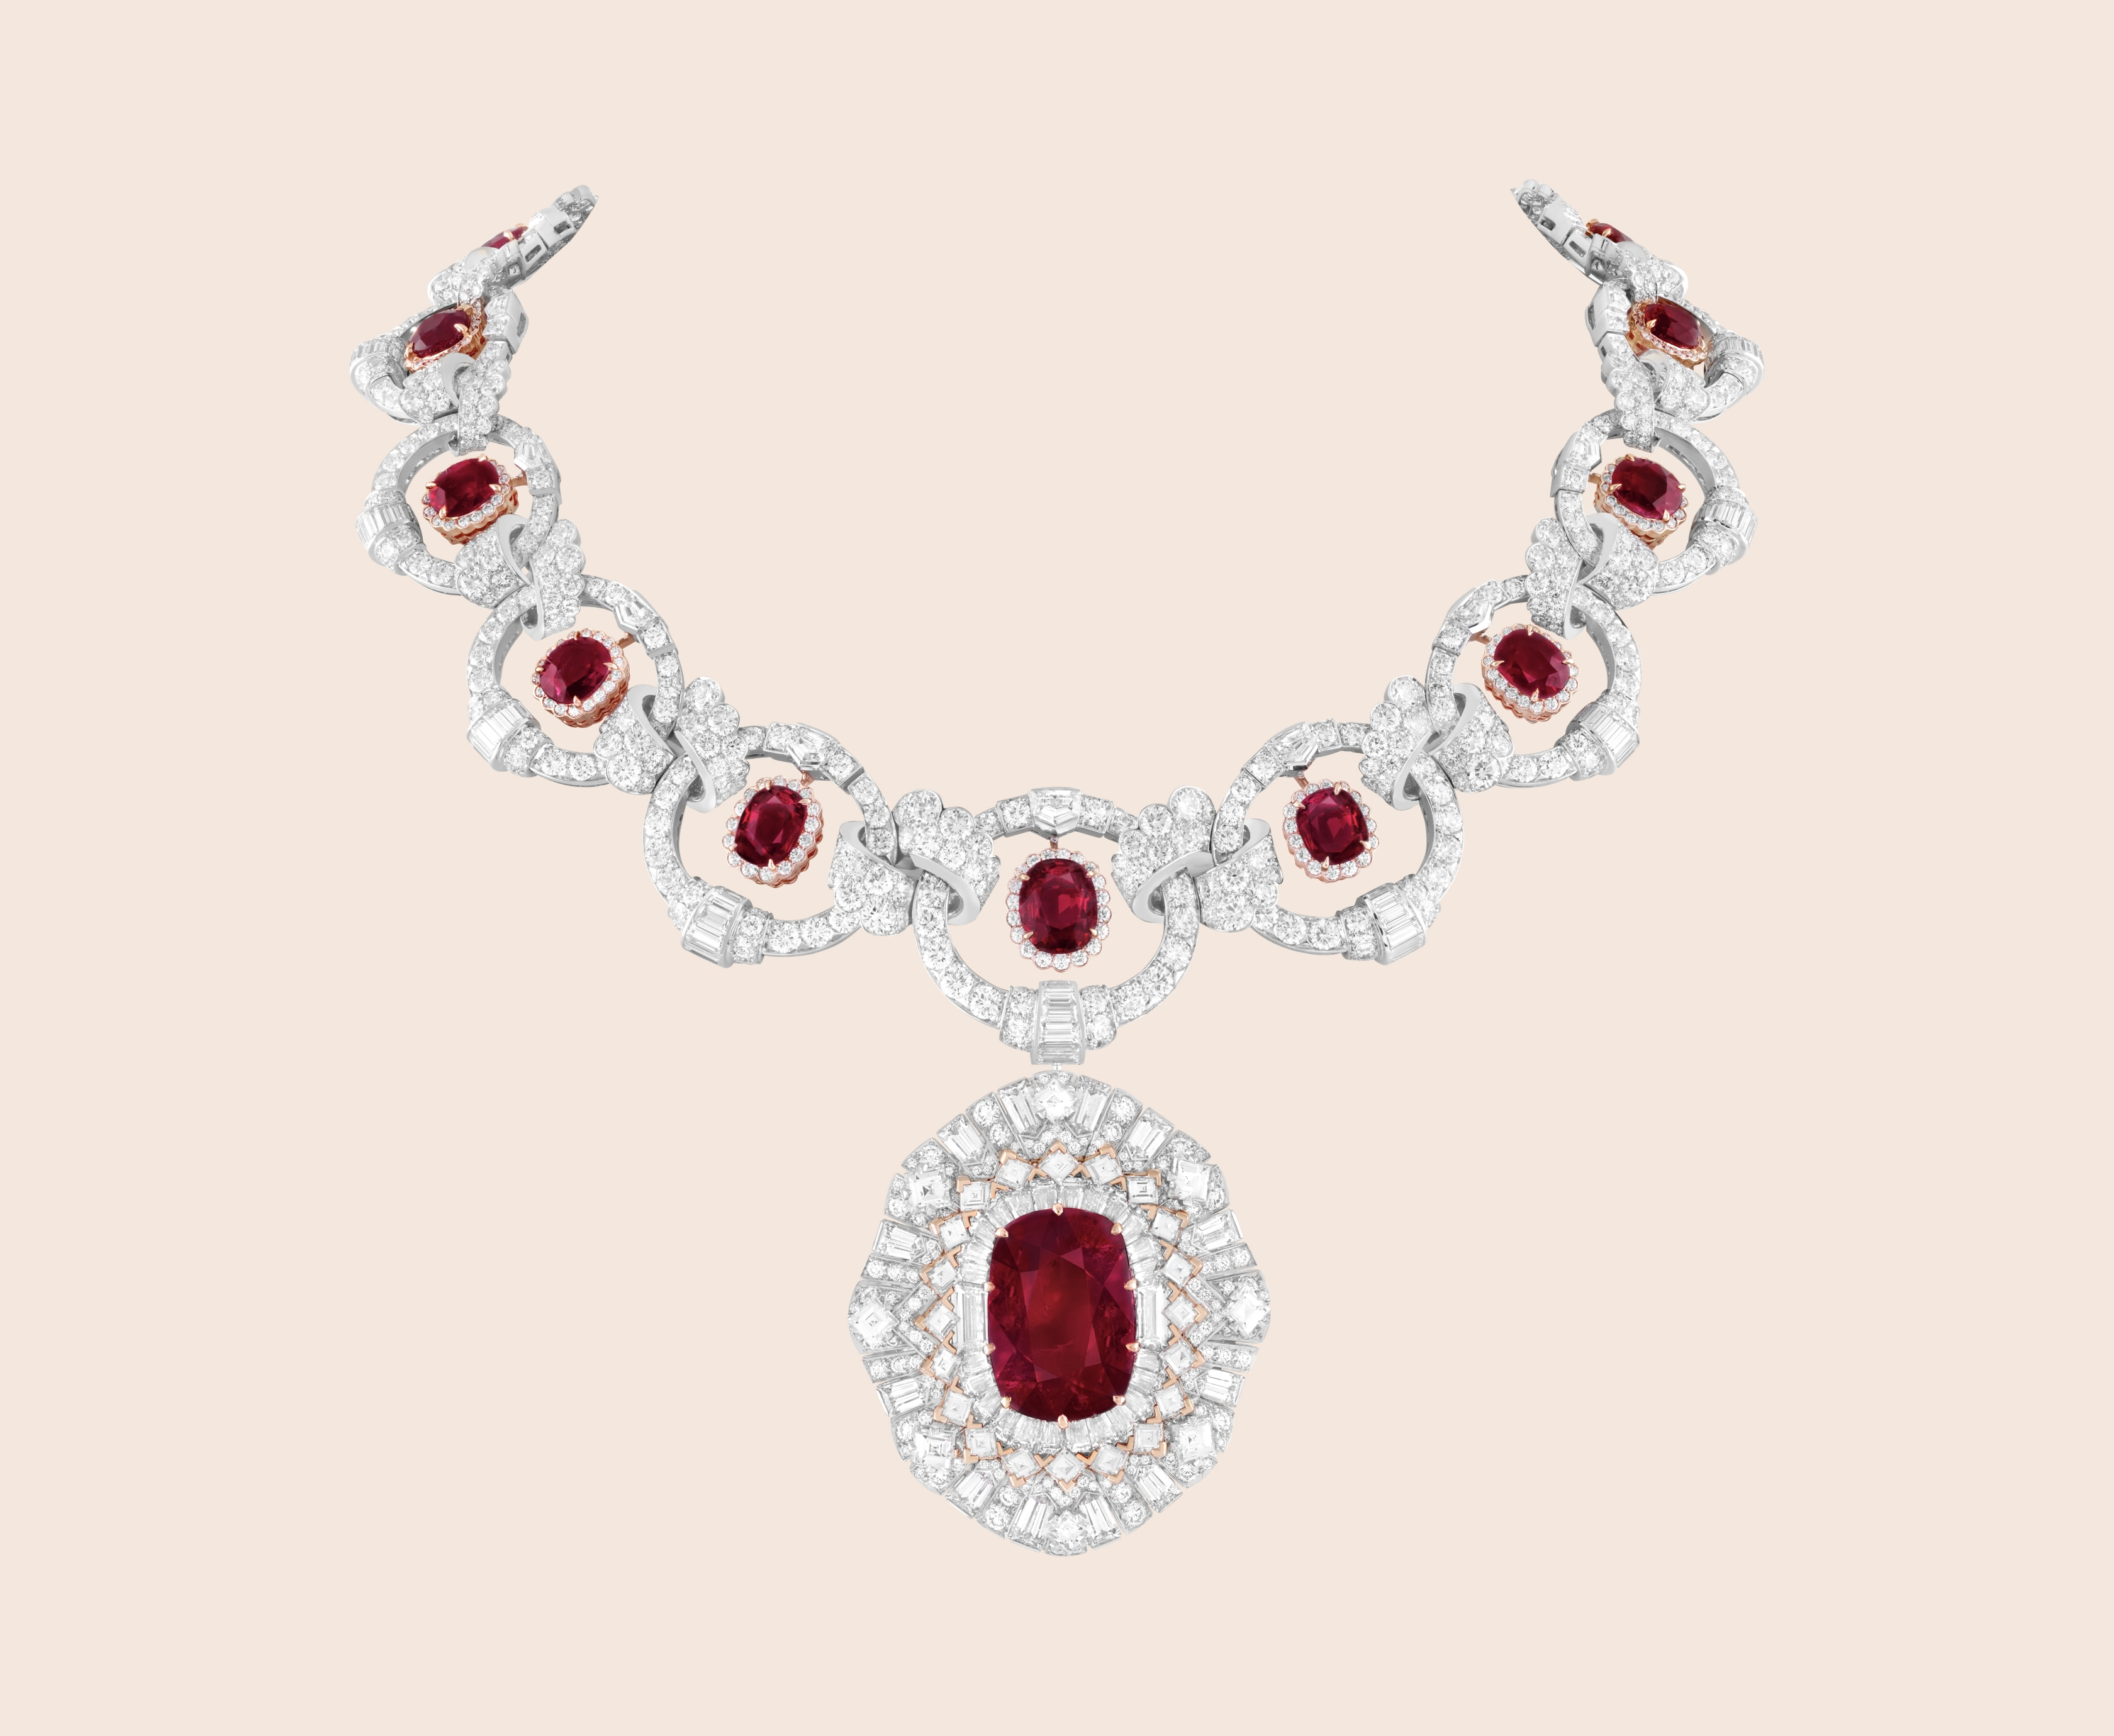 Rubis flamboyant transformable necklace, White gold, rose gold, 18 oval-cut and cushion-cut rubies for 30.40 carats (Burma), diamonds, Treasure of rubies collection, Van Cleef & Arpels